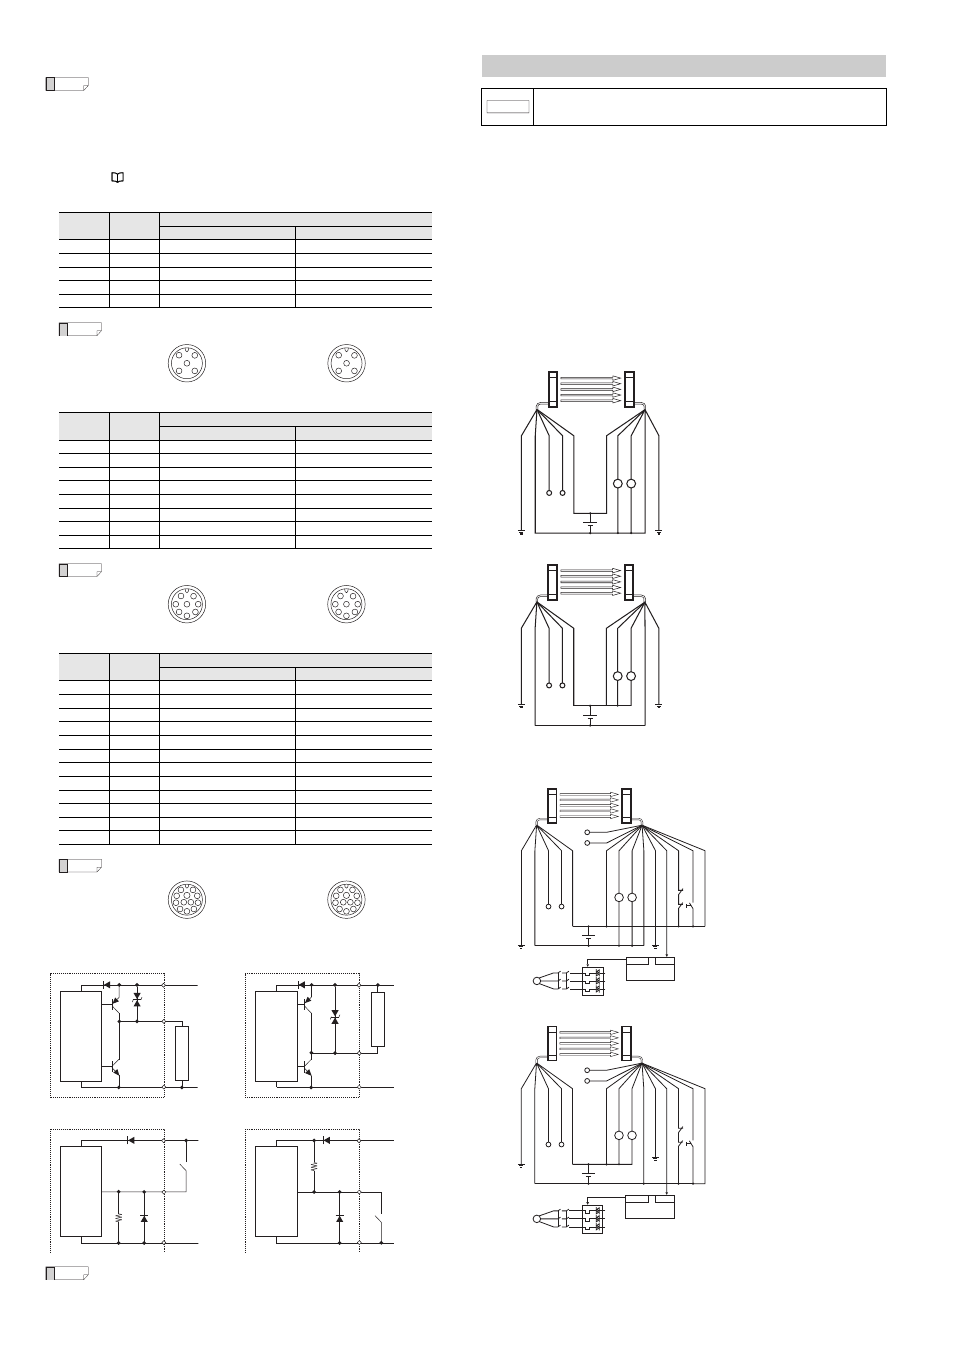 Examples of wiring, E gl-r-im cable color and pin position